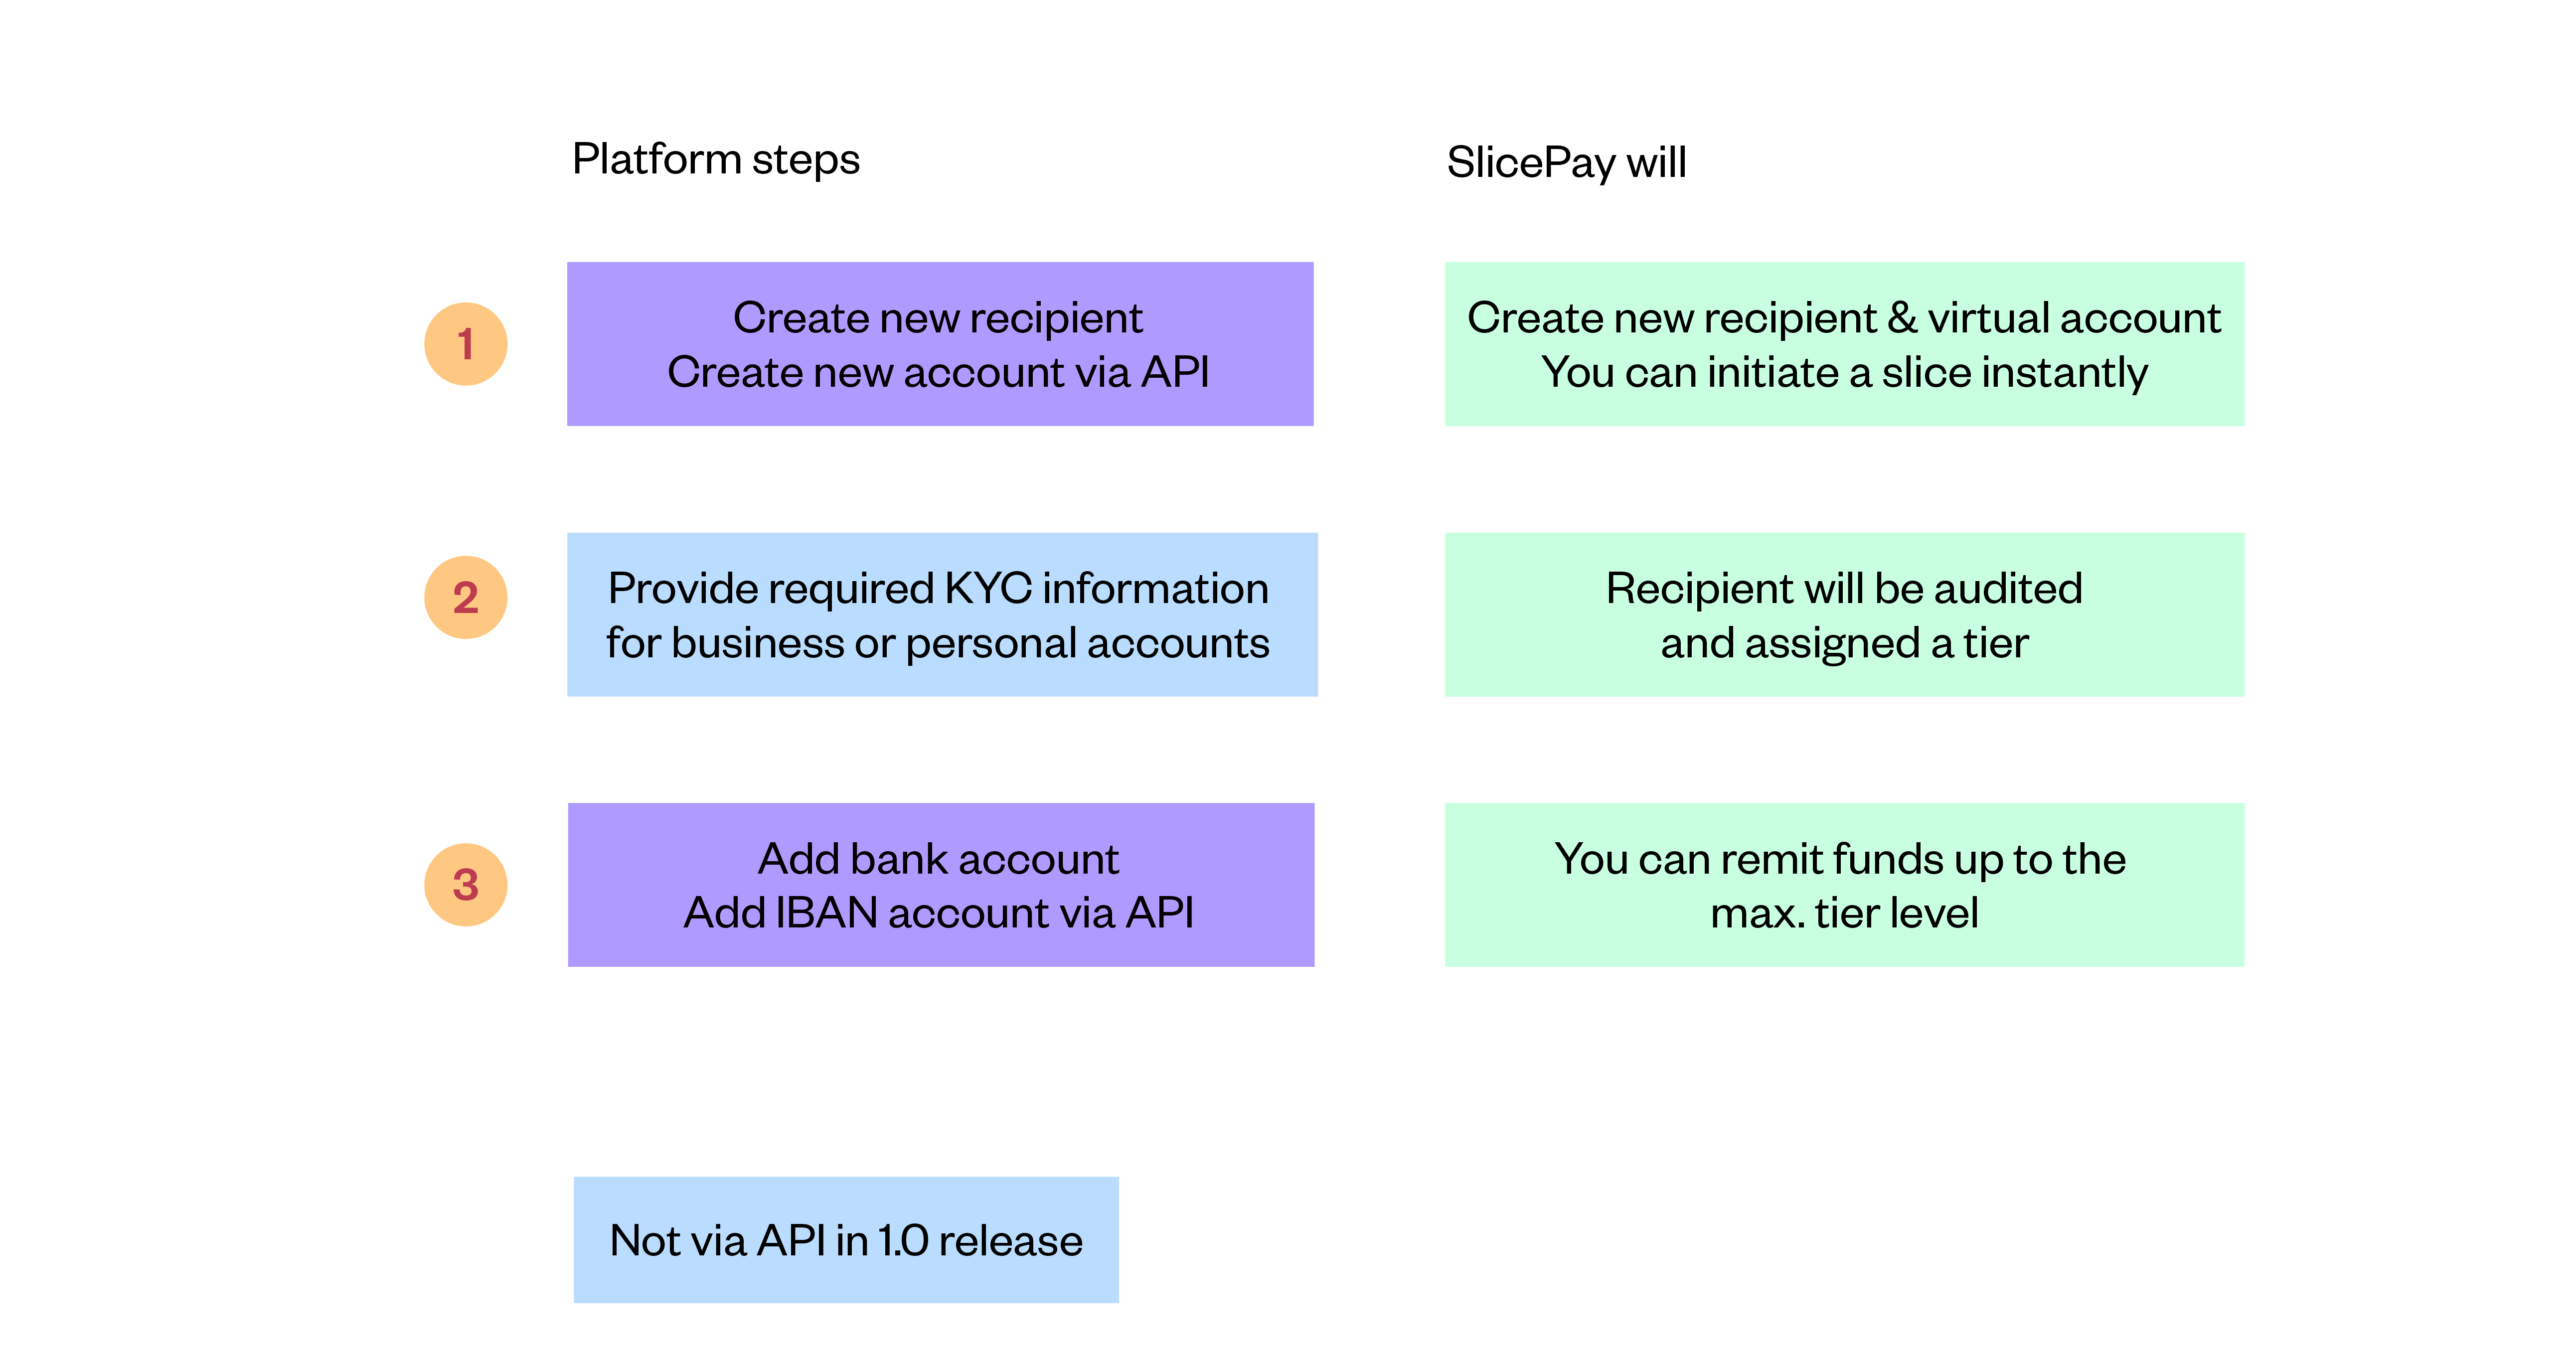 SlicePay - The onboarding process